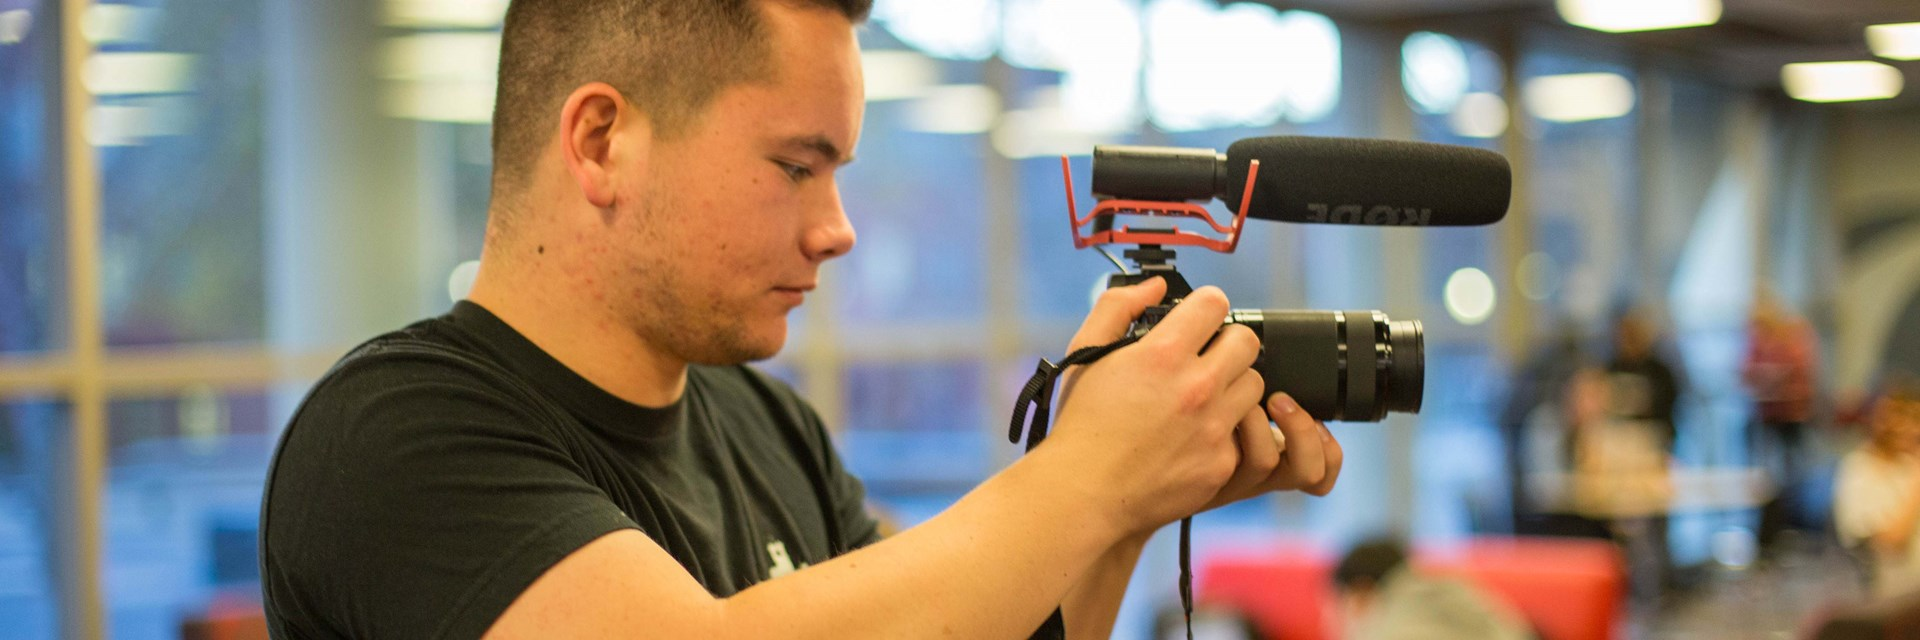 Male student employee using a video camera